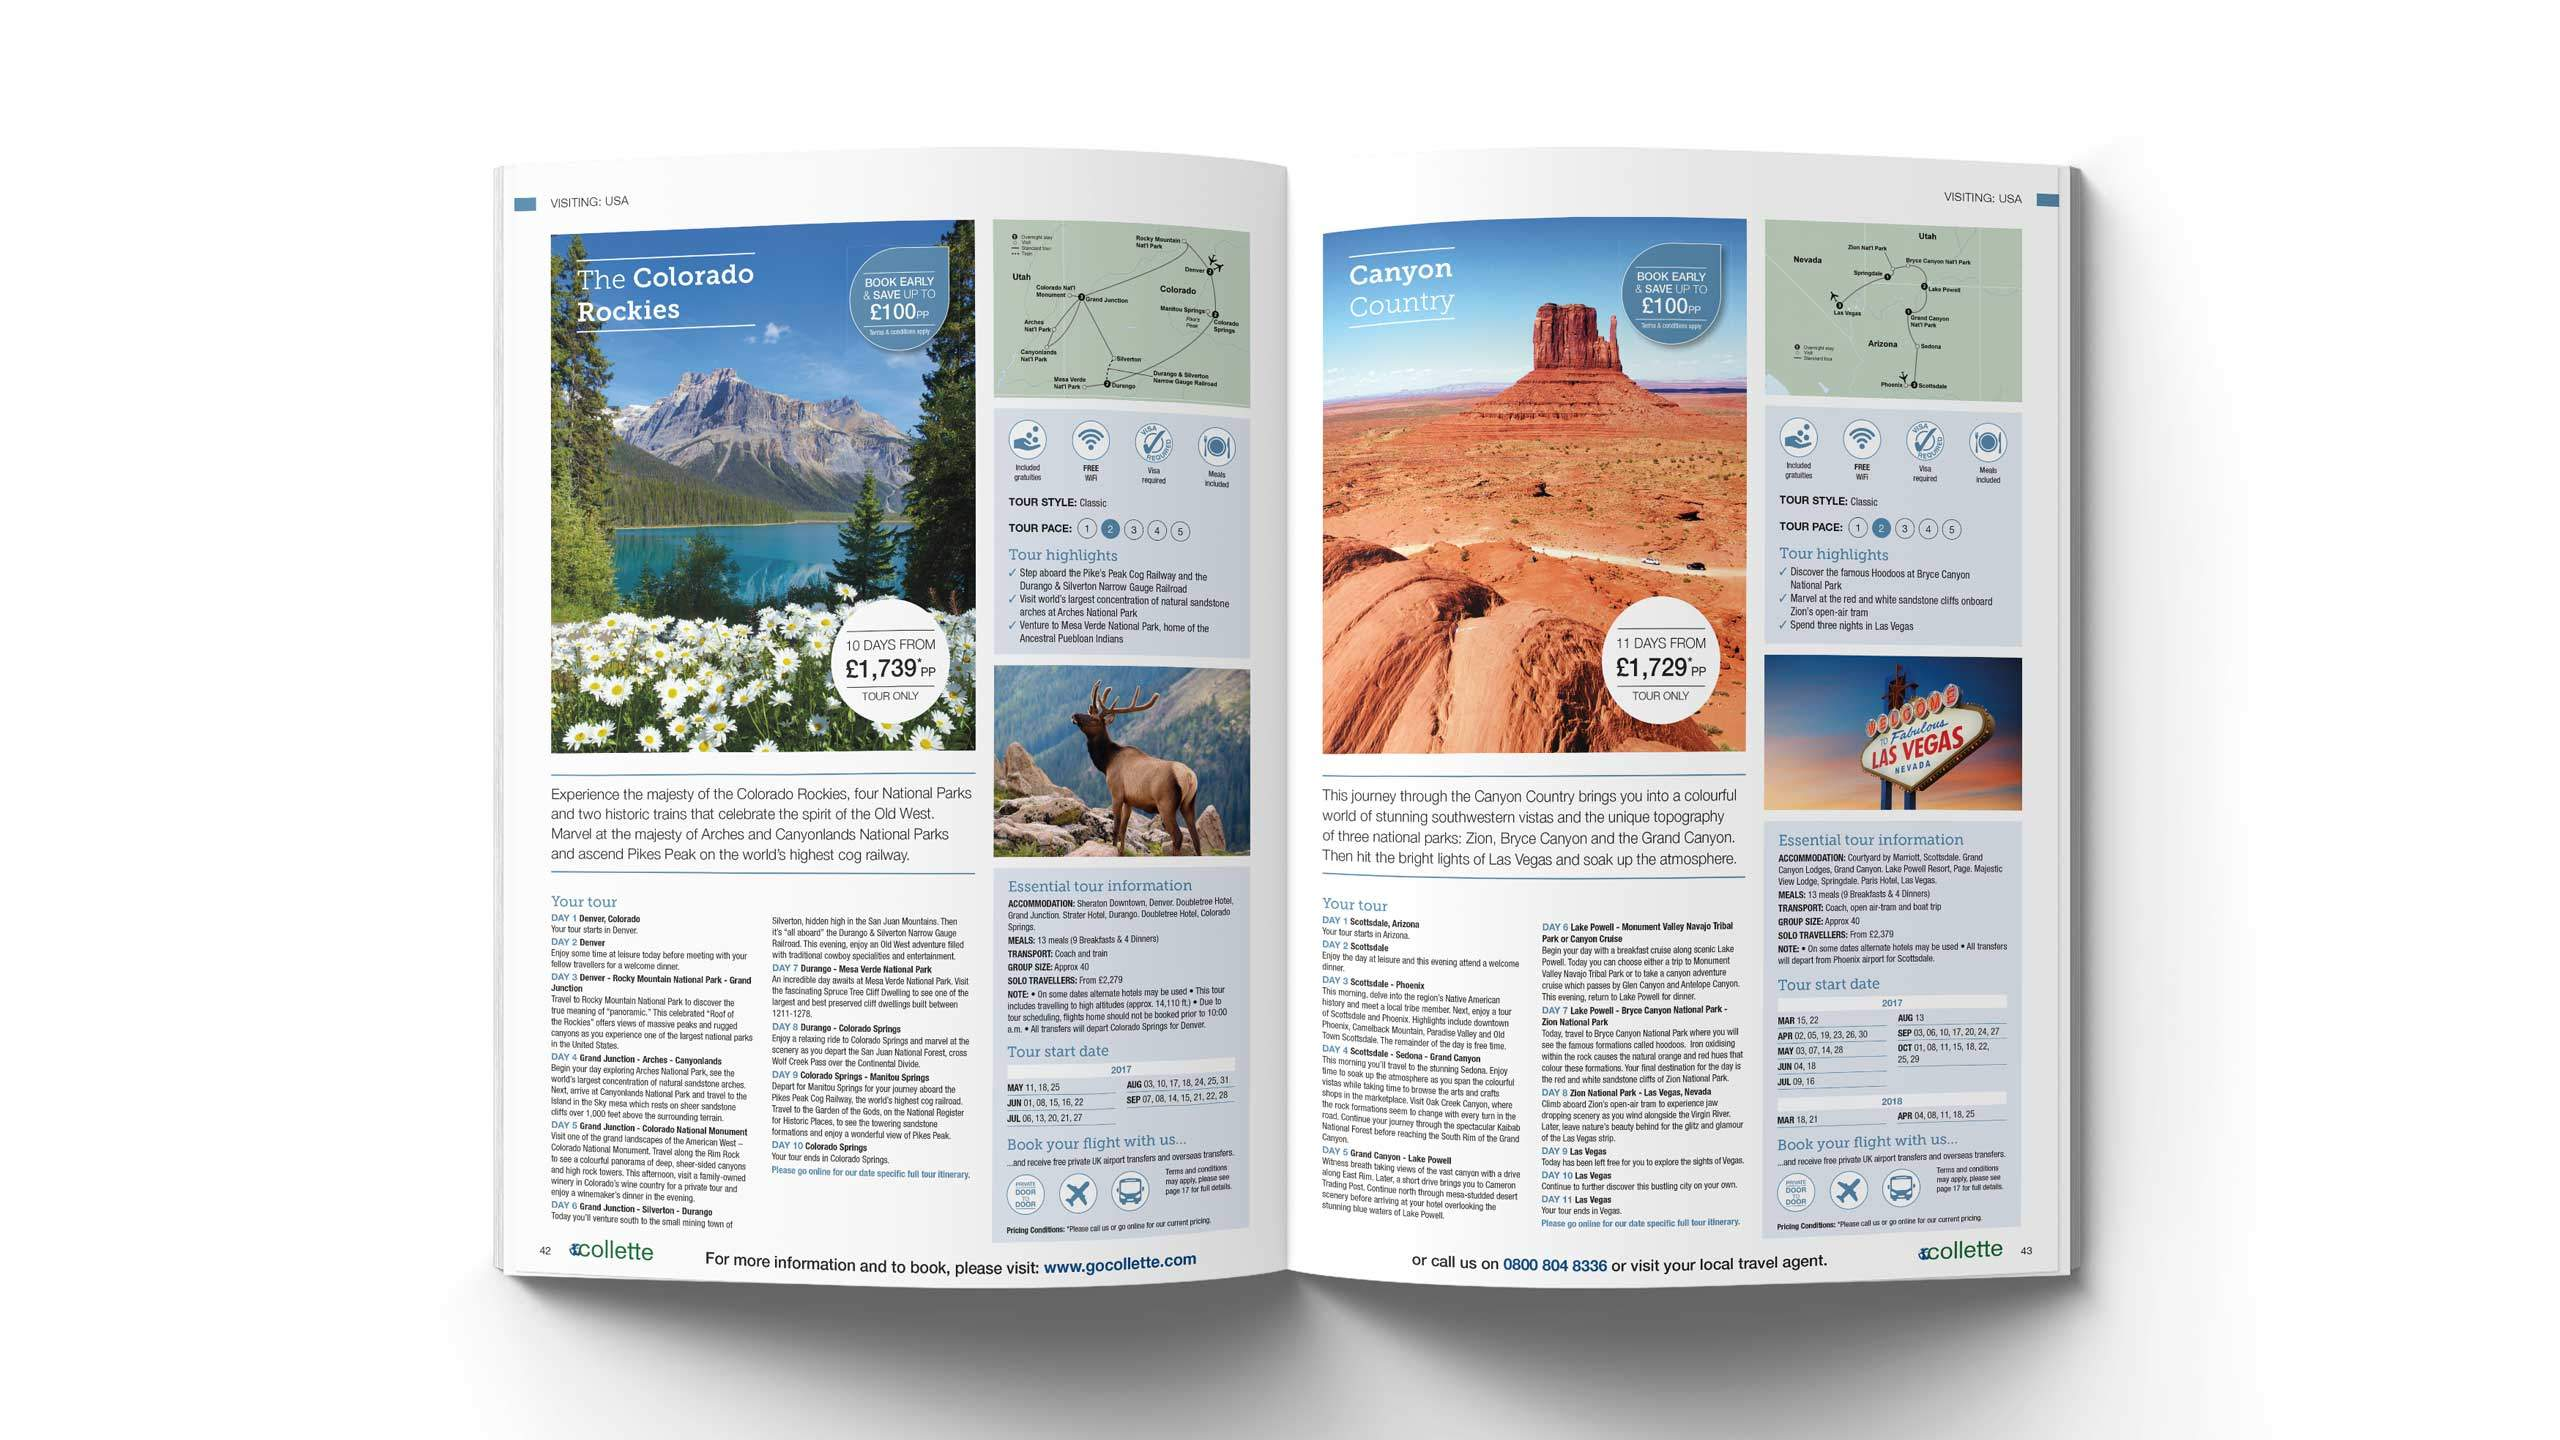 escorted travel brochure design rockies grand canyon pages collette thomas cook